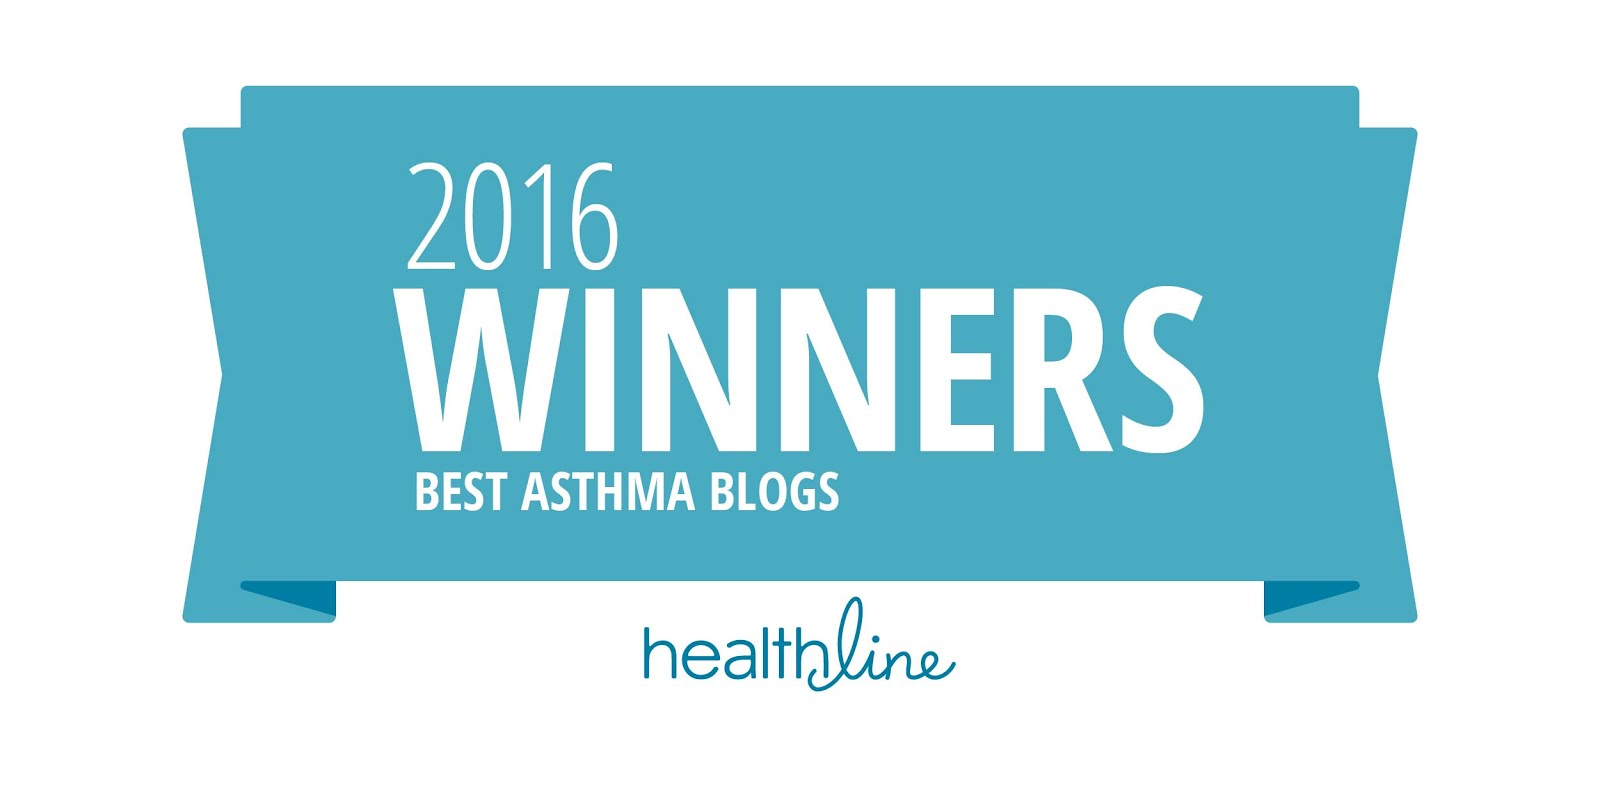 One of 11 Best Asthma Blogs by Healthline